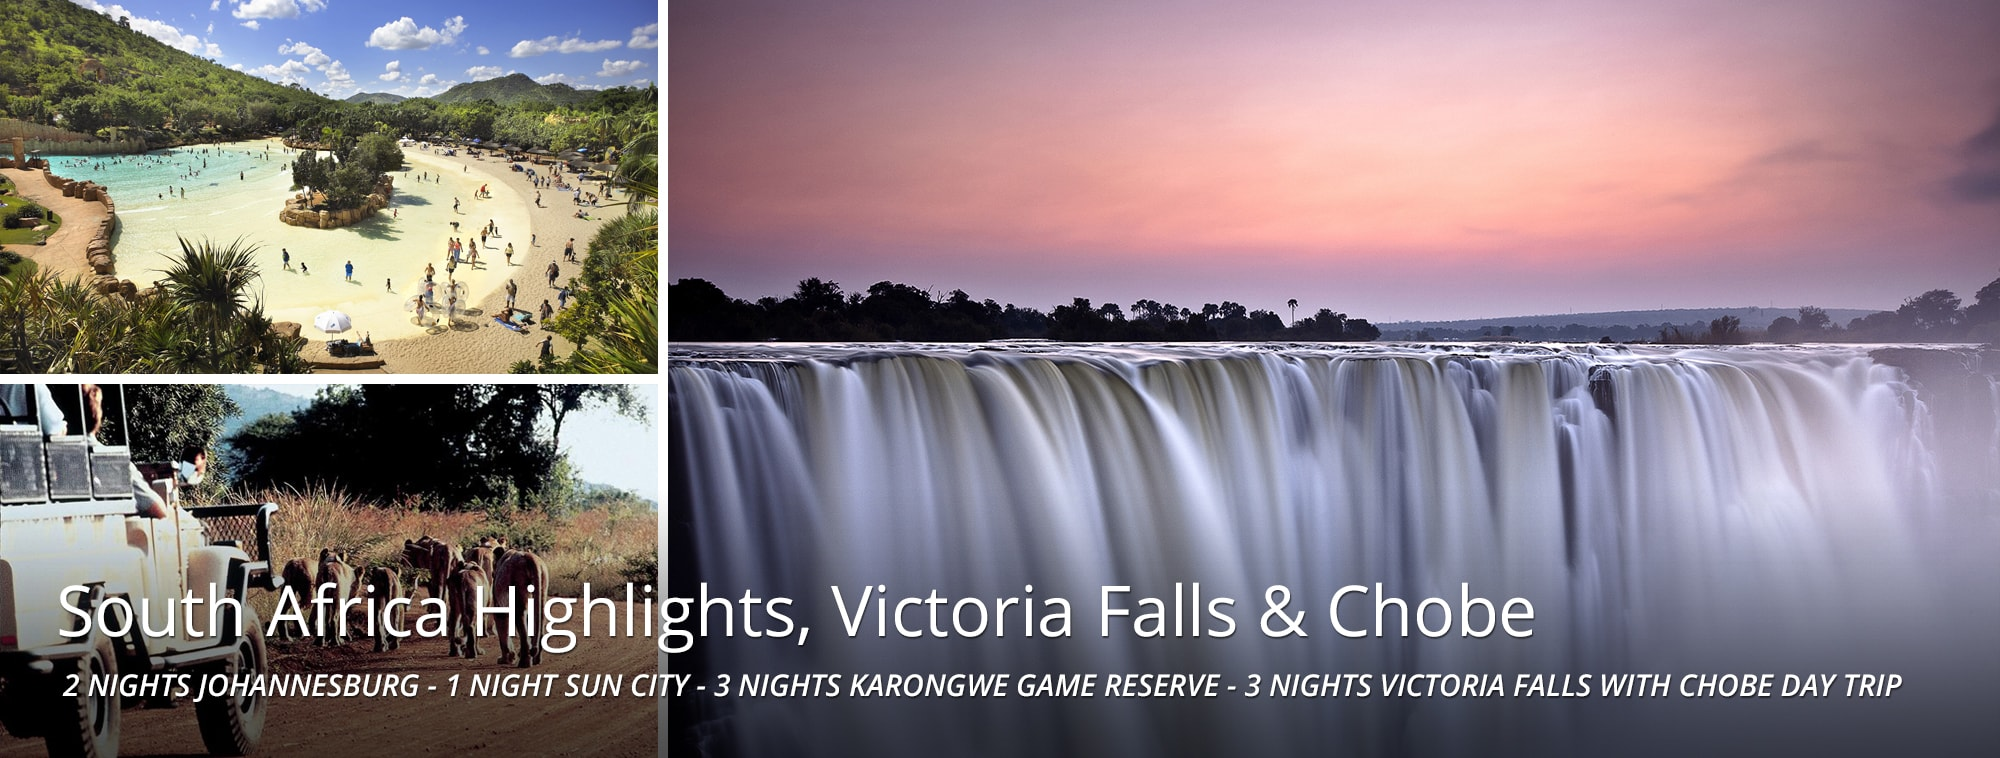 South Africa Highlights, Victoria Falls Chobe Tour Banner